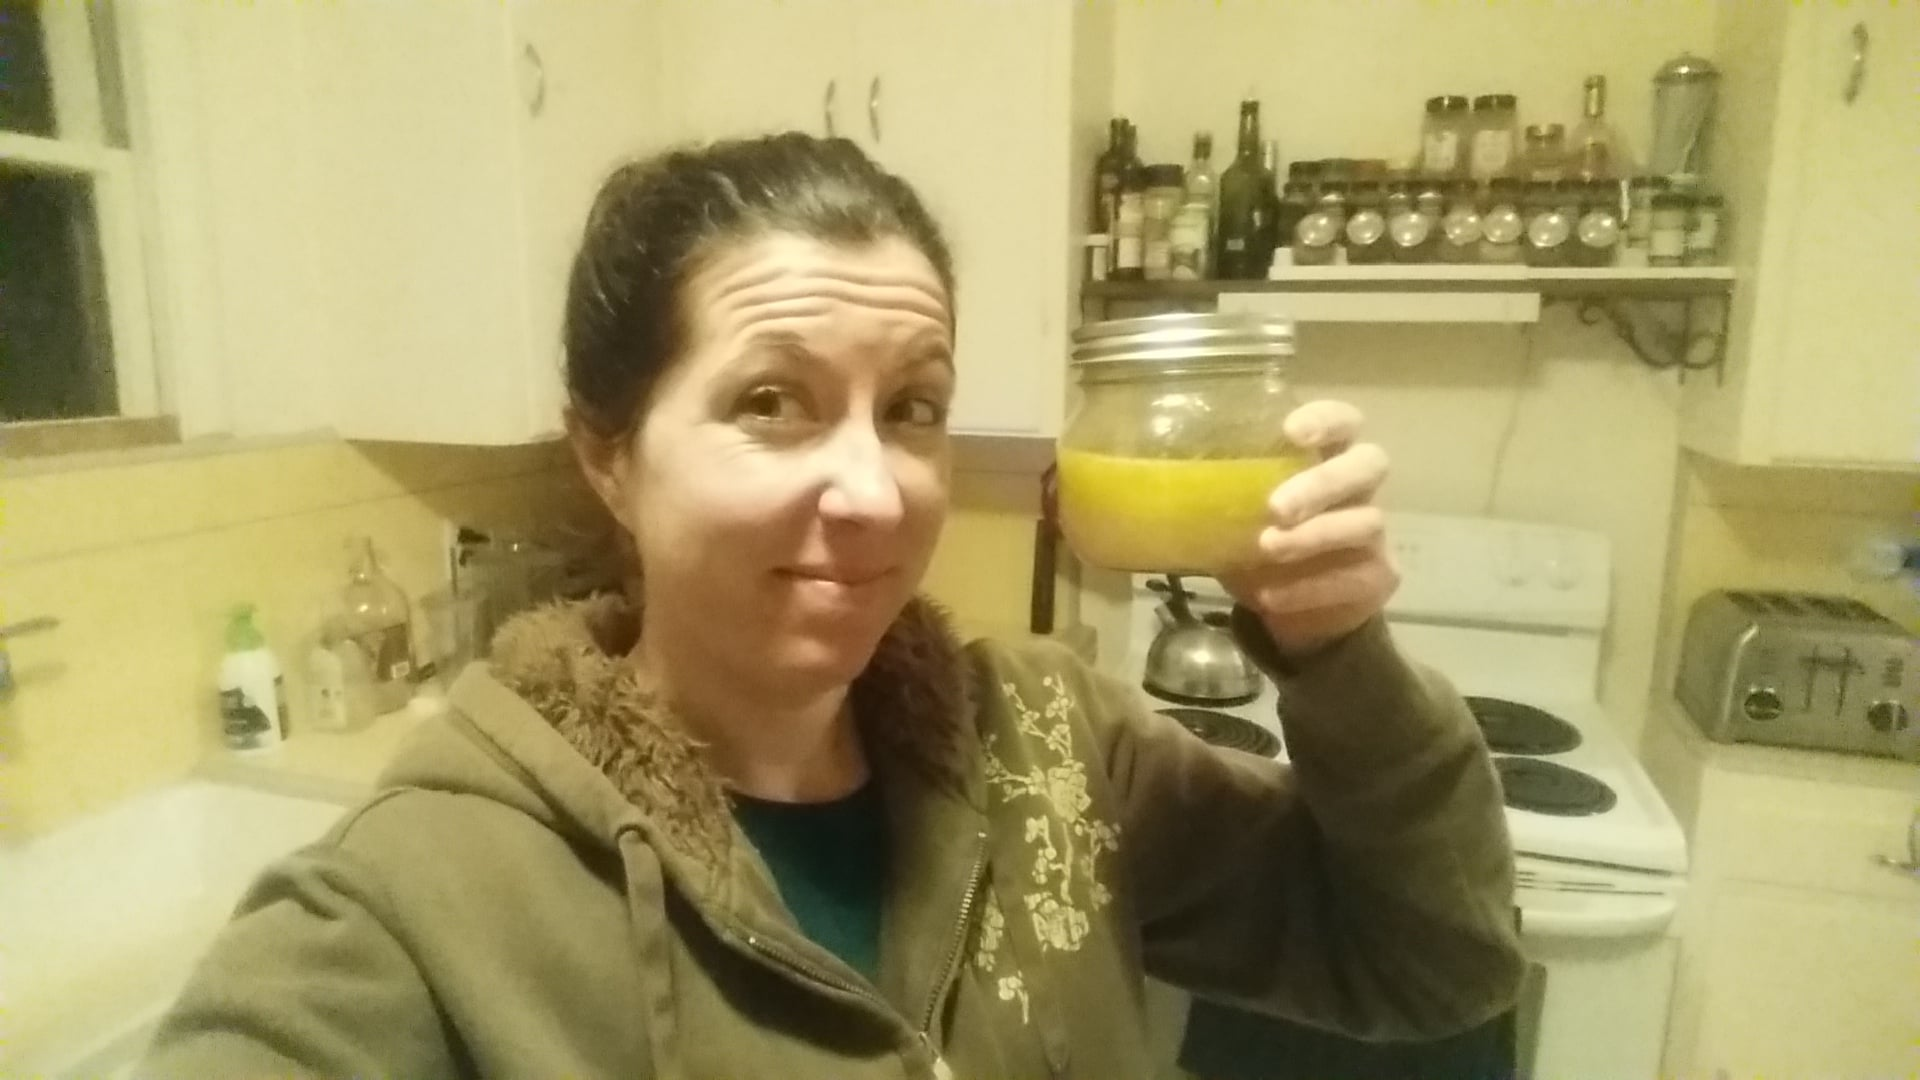 BOTTOMS UP!!   THIS IS THE GRAPEFRUIT/OLIVE OIL BLEND, AND IT'S NOT BAD!